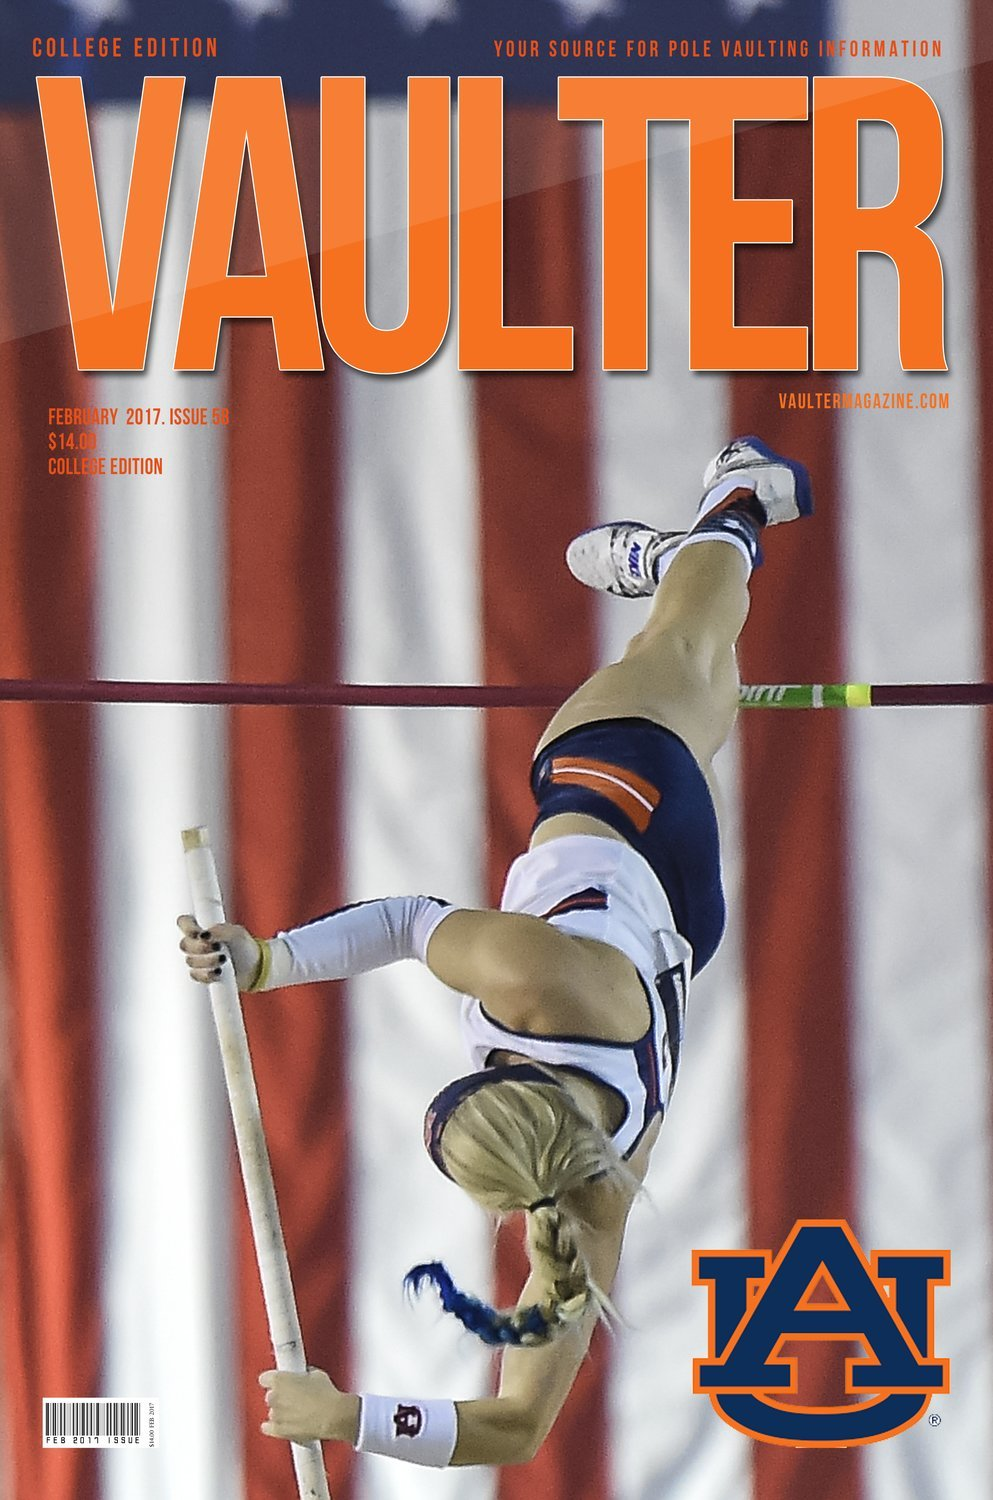 Auburn Universities Jessie Johnson University Cover of Vaulter Magazine USPS Only